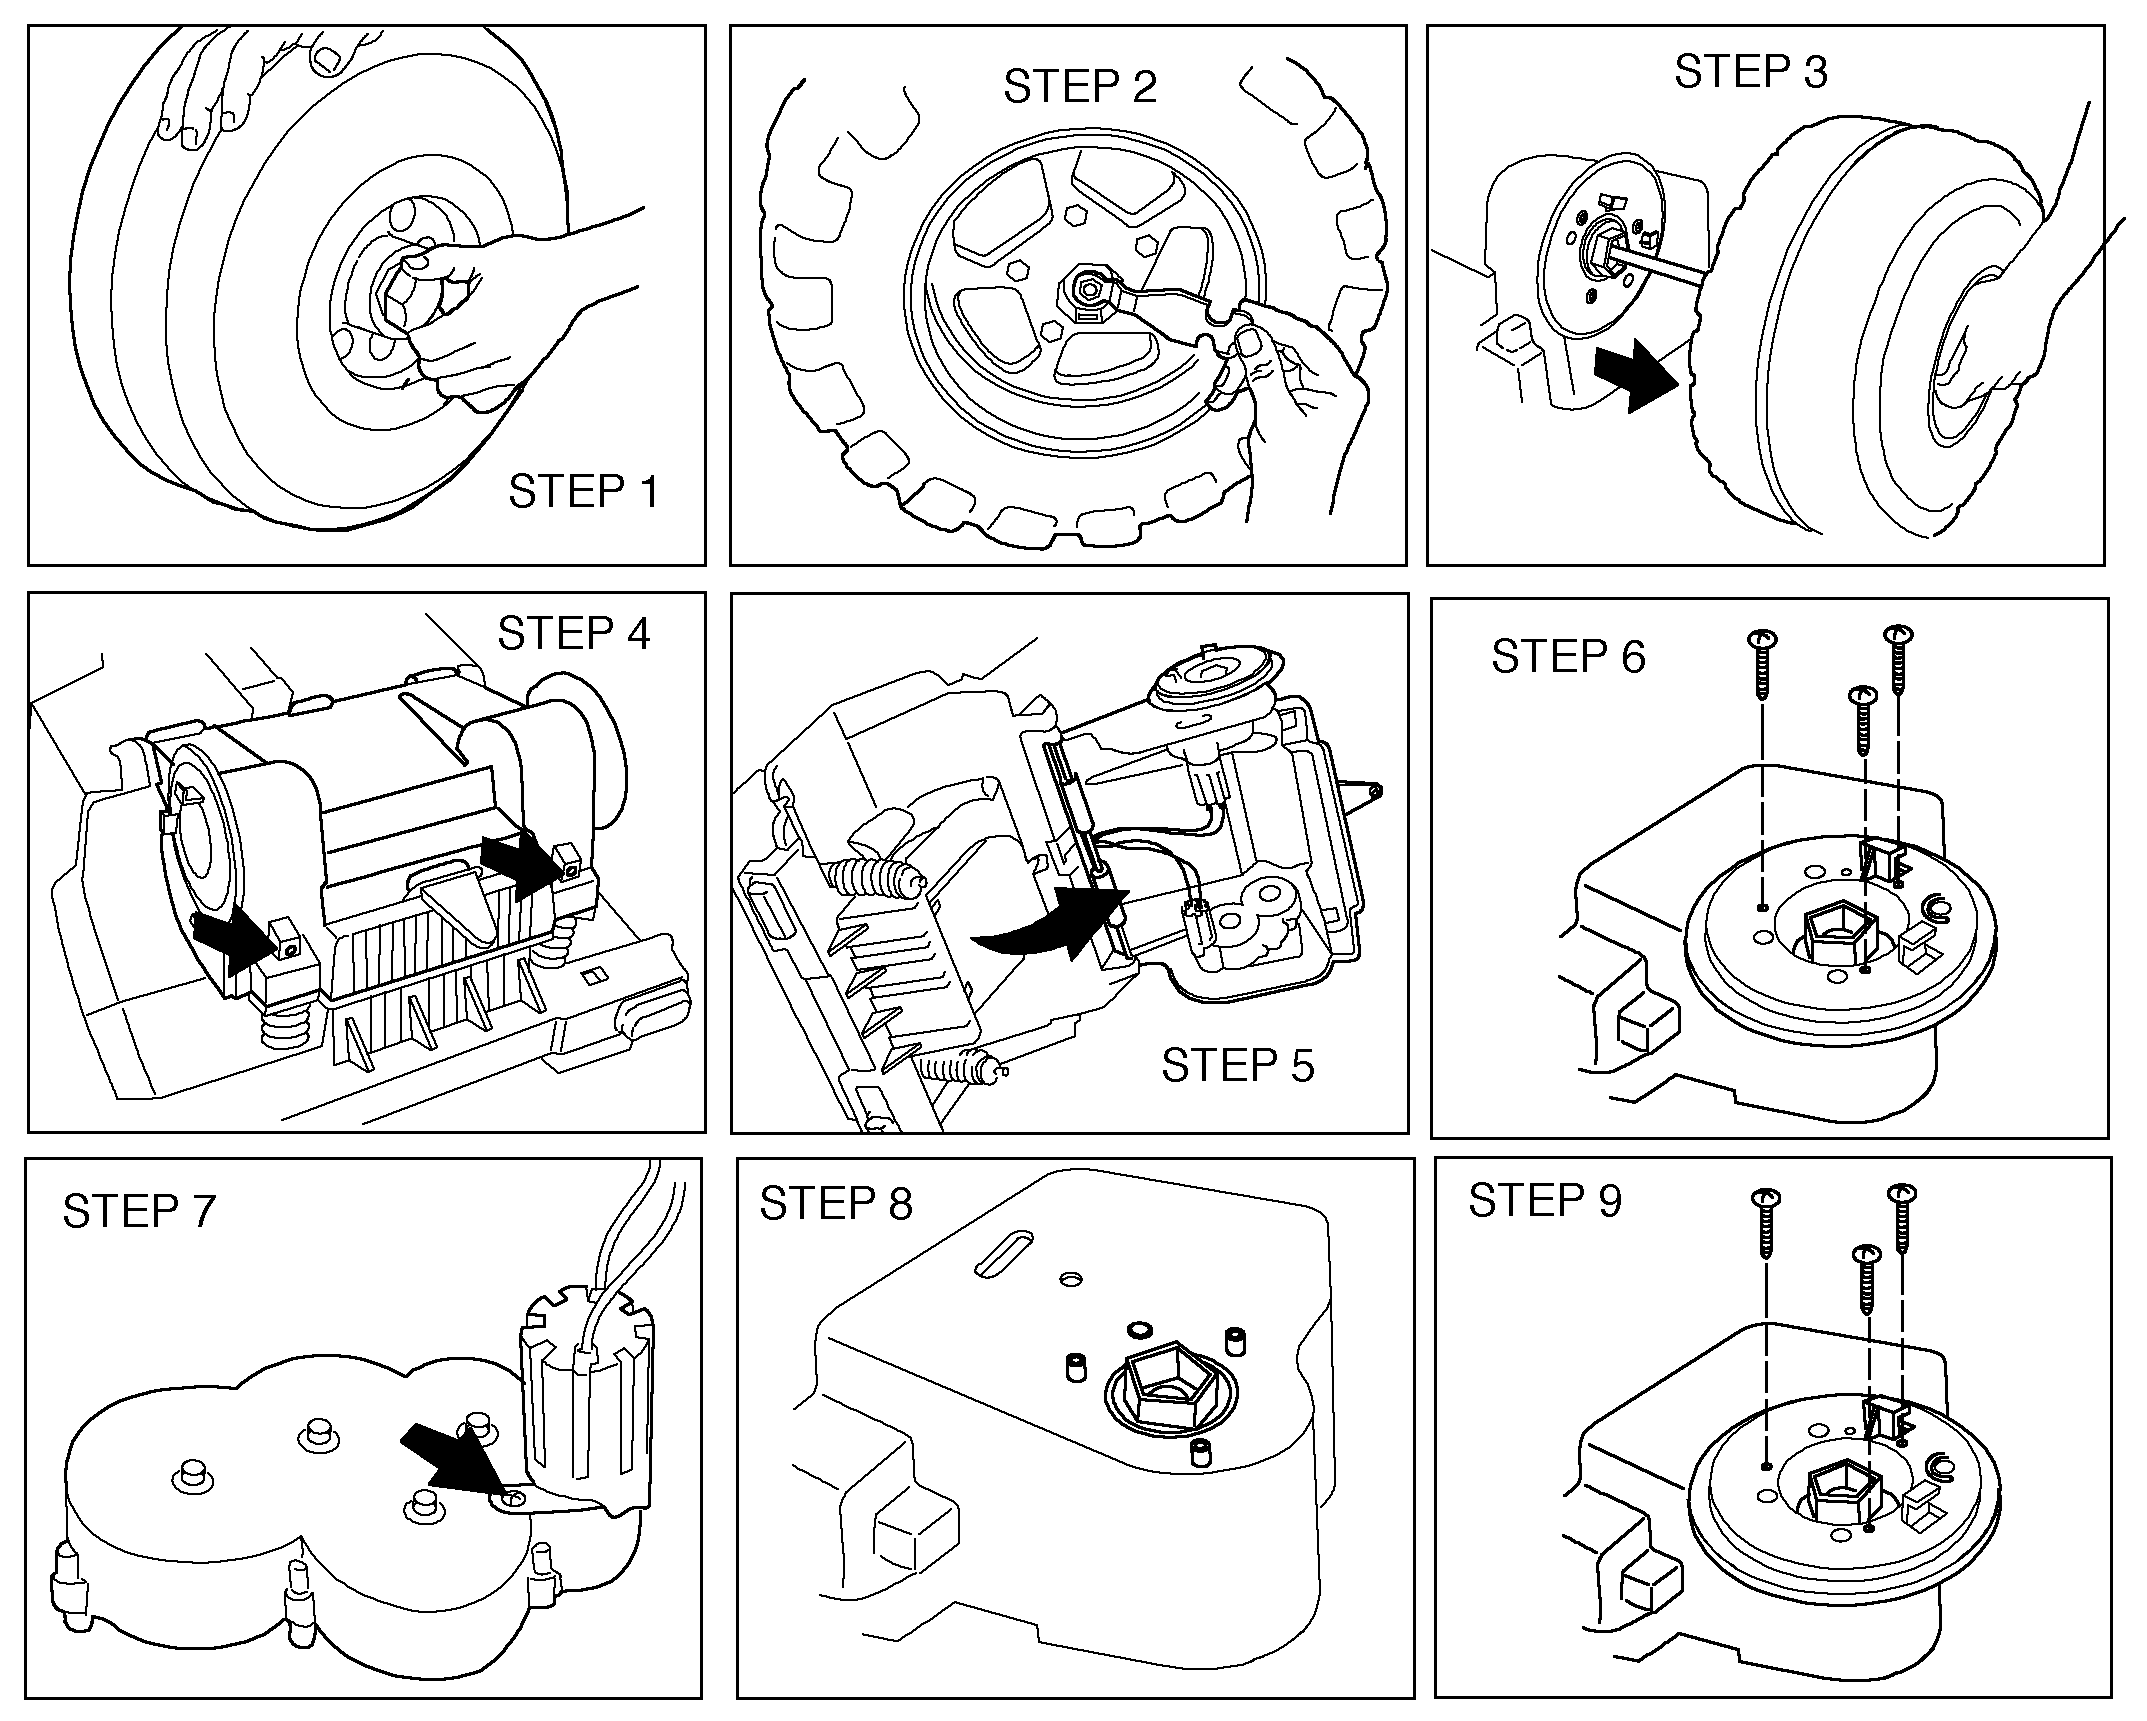 How_to_change_the_Gearbox_in_your_Peg_Perego_Gaucho_Grande how to change the gearbox in your peg perego gaucho grande peg perego gaucho grande wiring diagram at bayanpartner.co